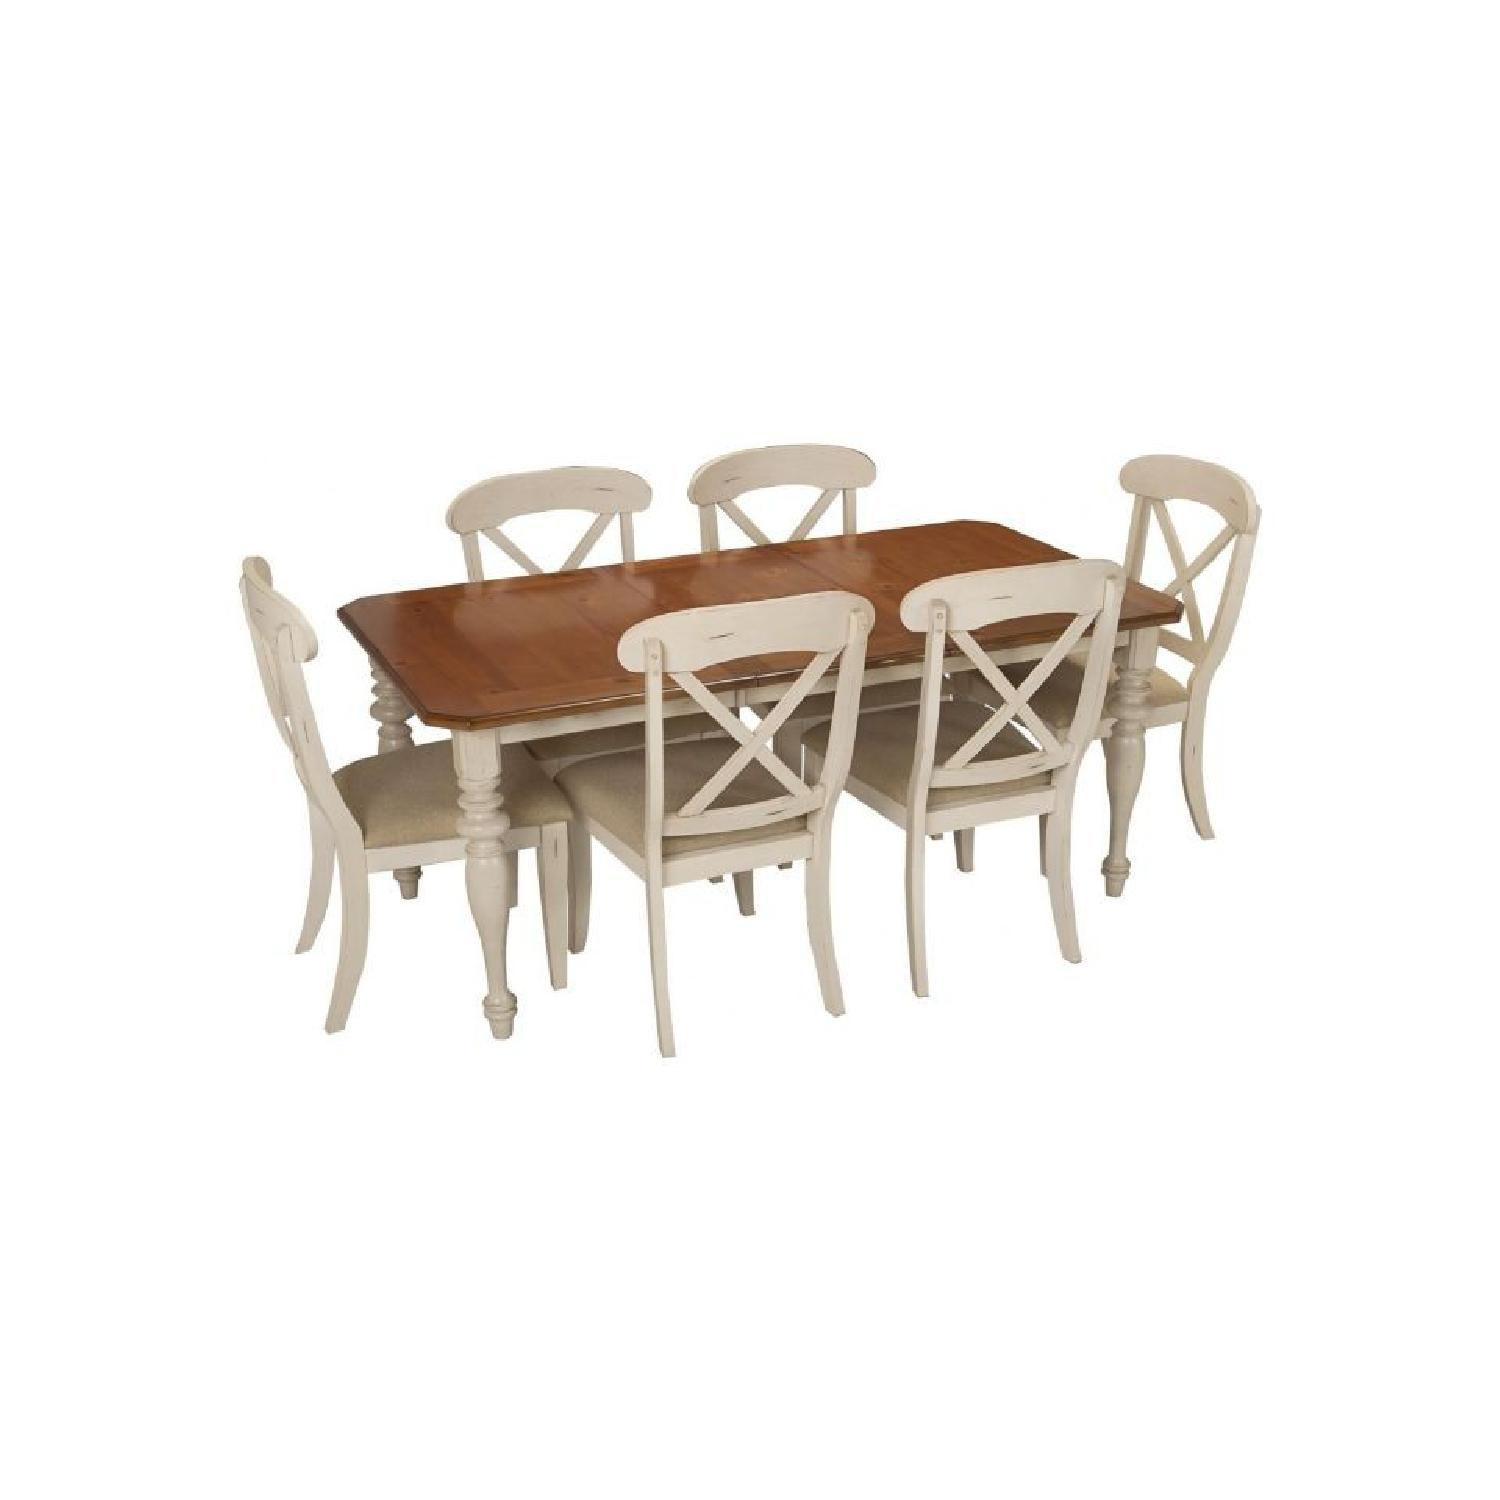 Raymour & Flanigan Modern Wooden 7-Piece Dining Set